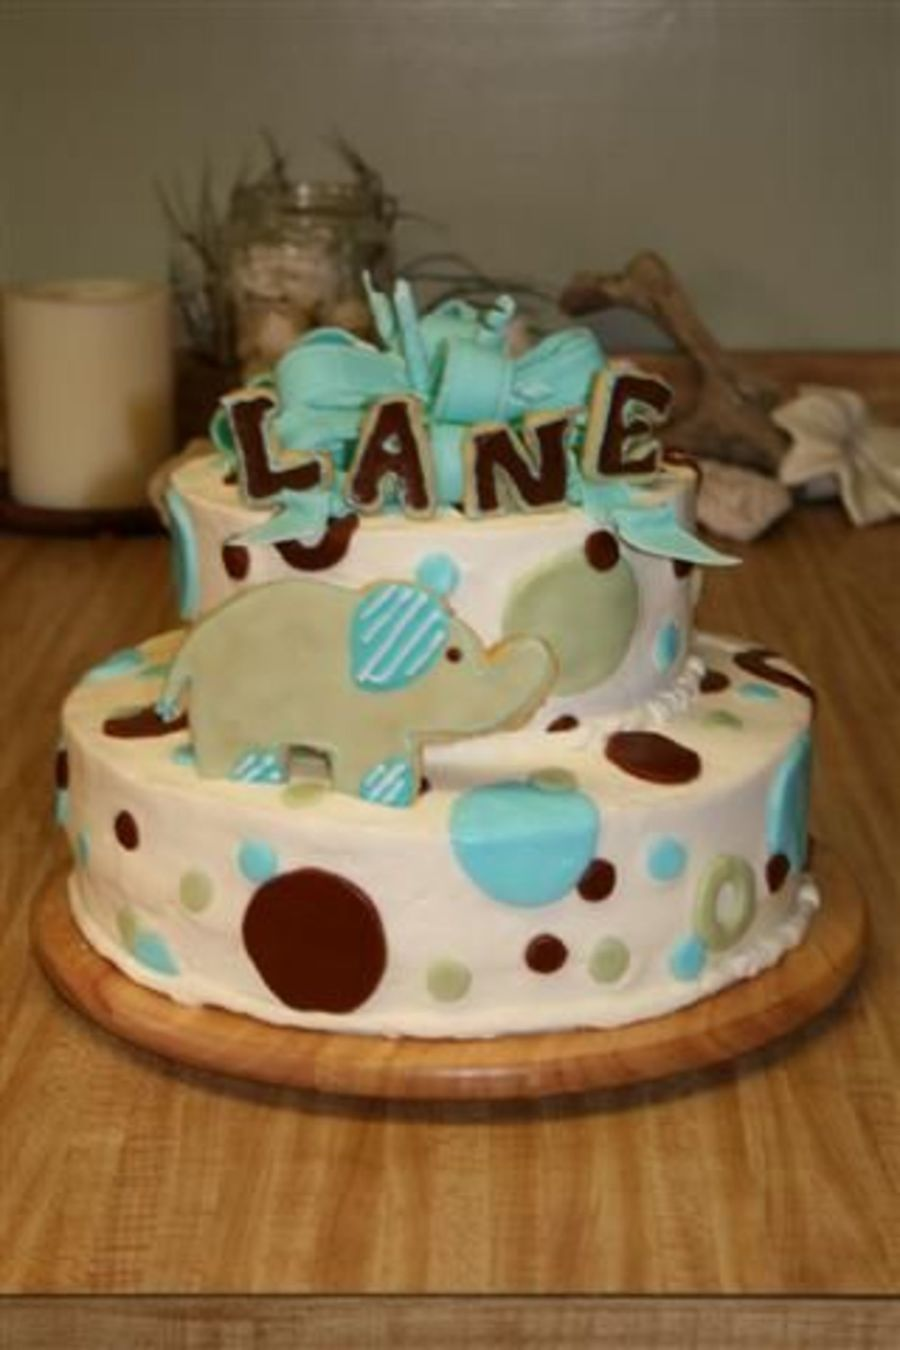 Baby_Lane_1_Small.jpg on Cake Central